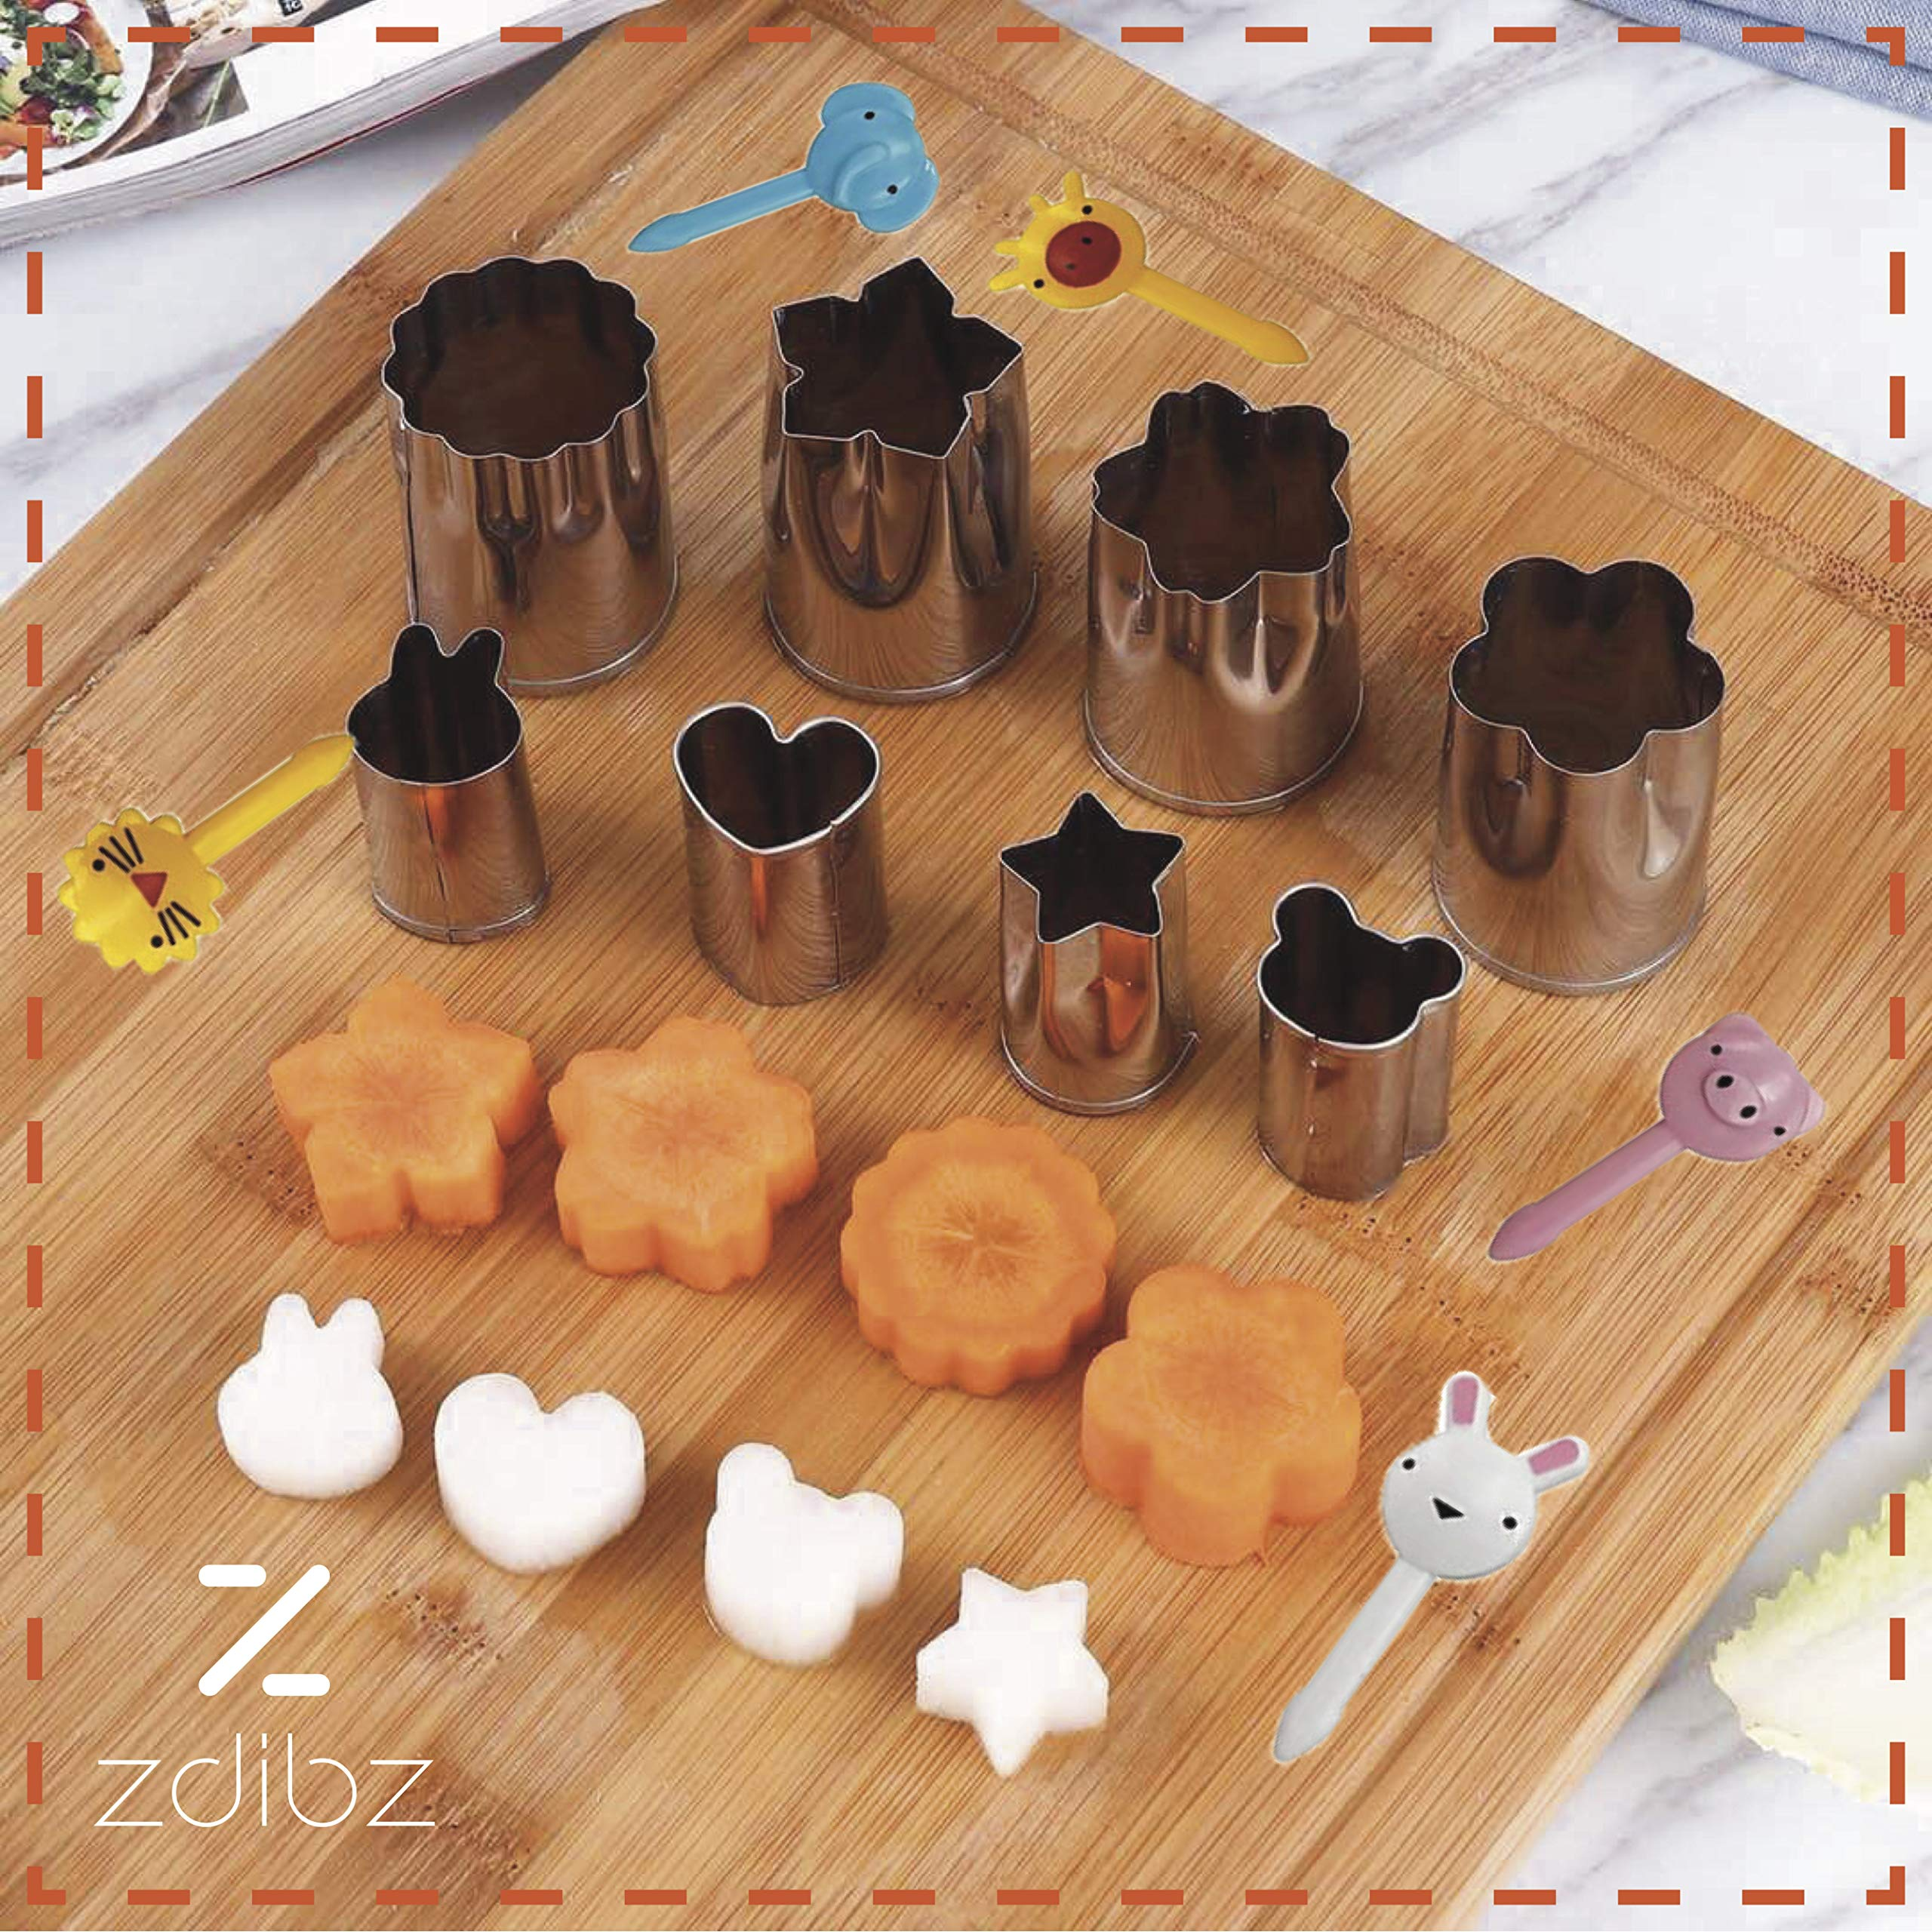 NEW Premium/Sturdy 29 Pc BPA Free Sandwich Cutter Set for Kids - Fun Bento Box Lunch Set For Boys, Girls & Toddlers - 8 Stainless Steel Fruit/Vegetable & Cookie Cutters - FREE 10 Food/Fruit Picks by zdibz (Image #5)